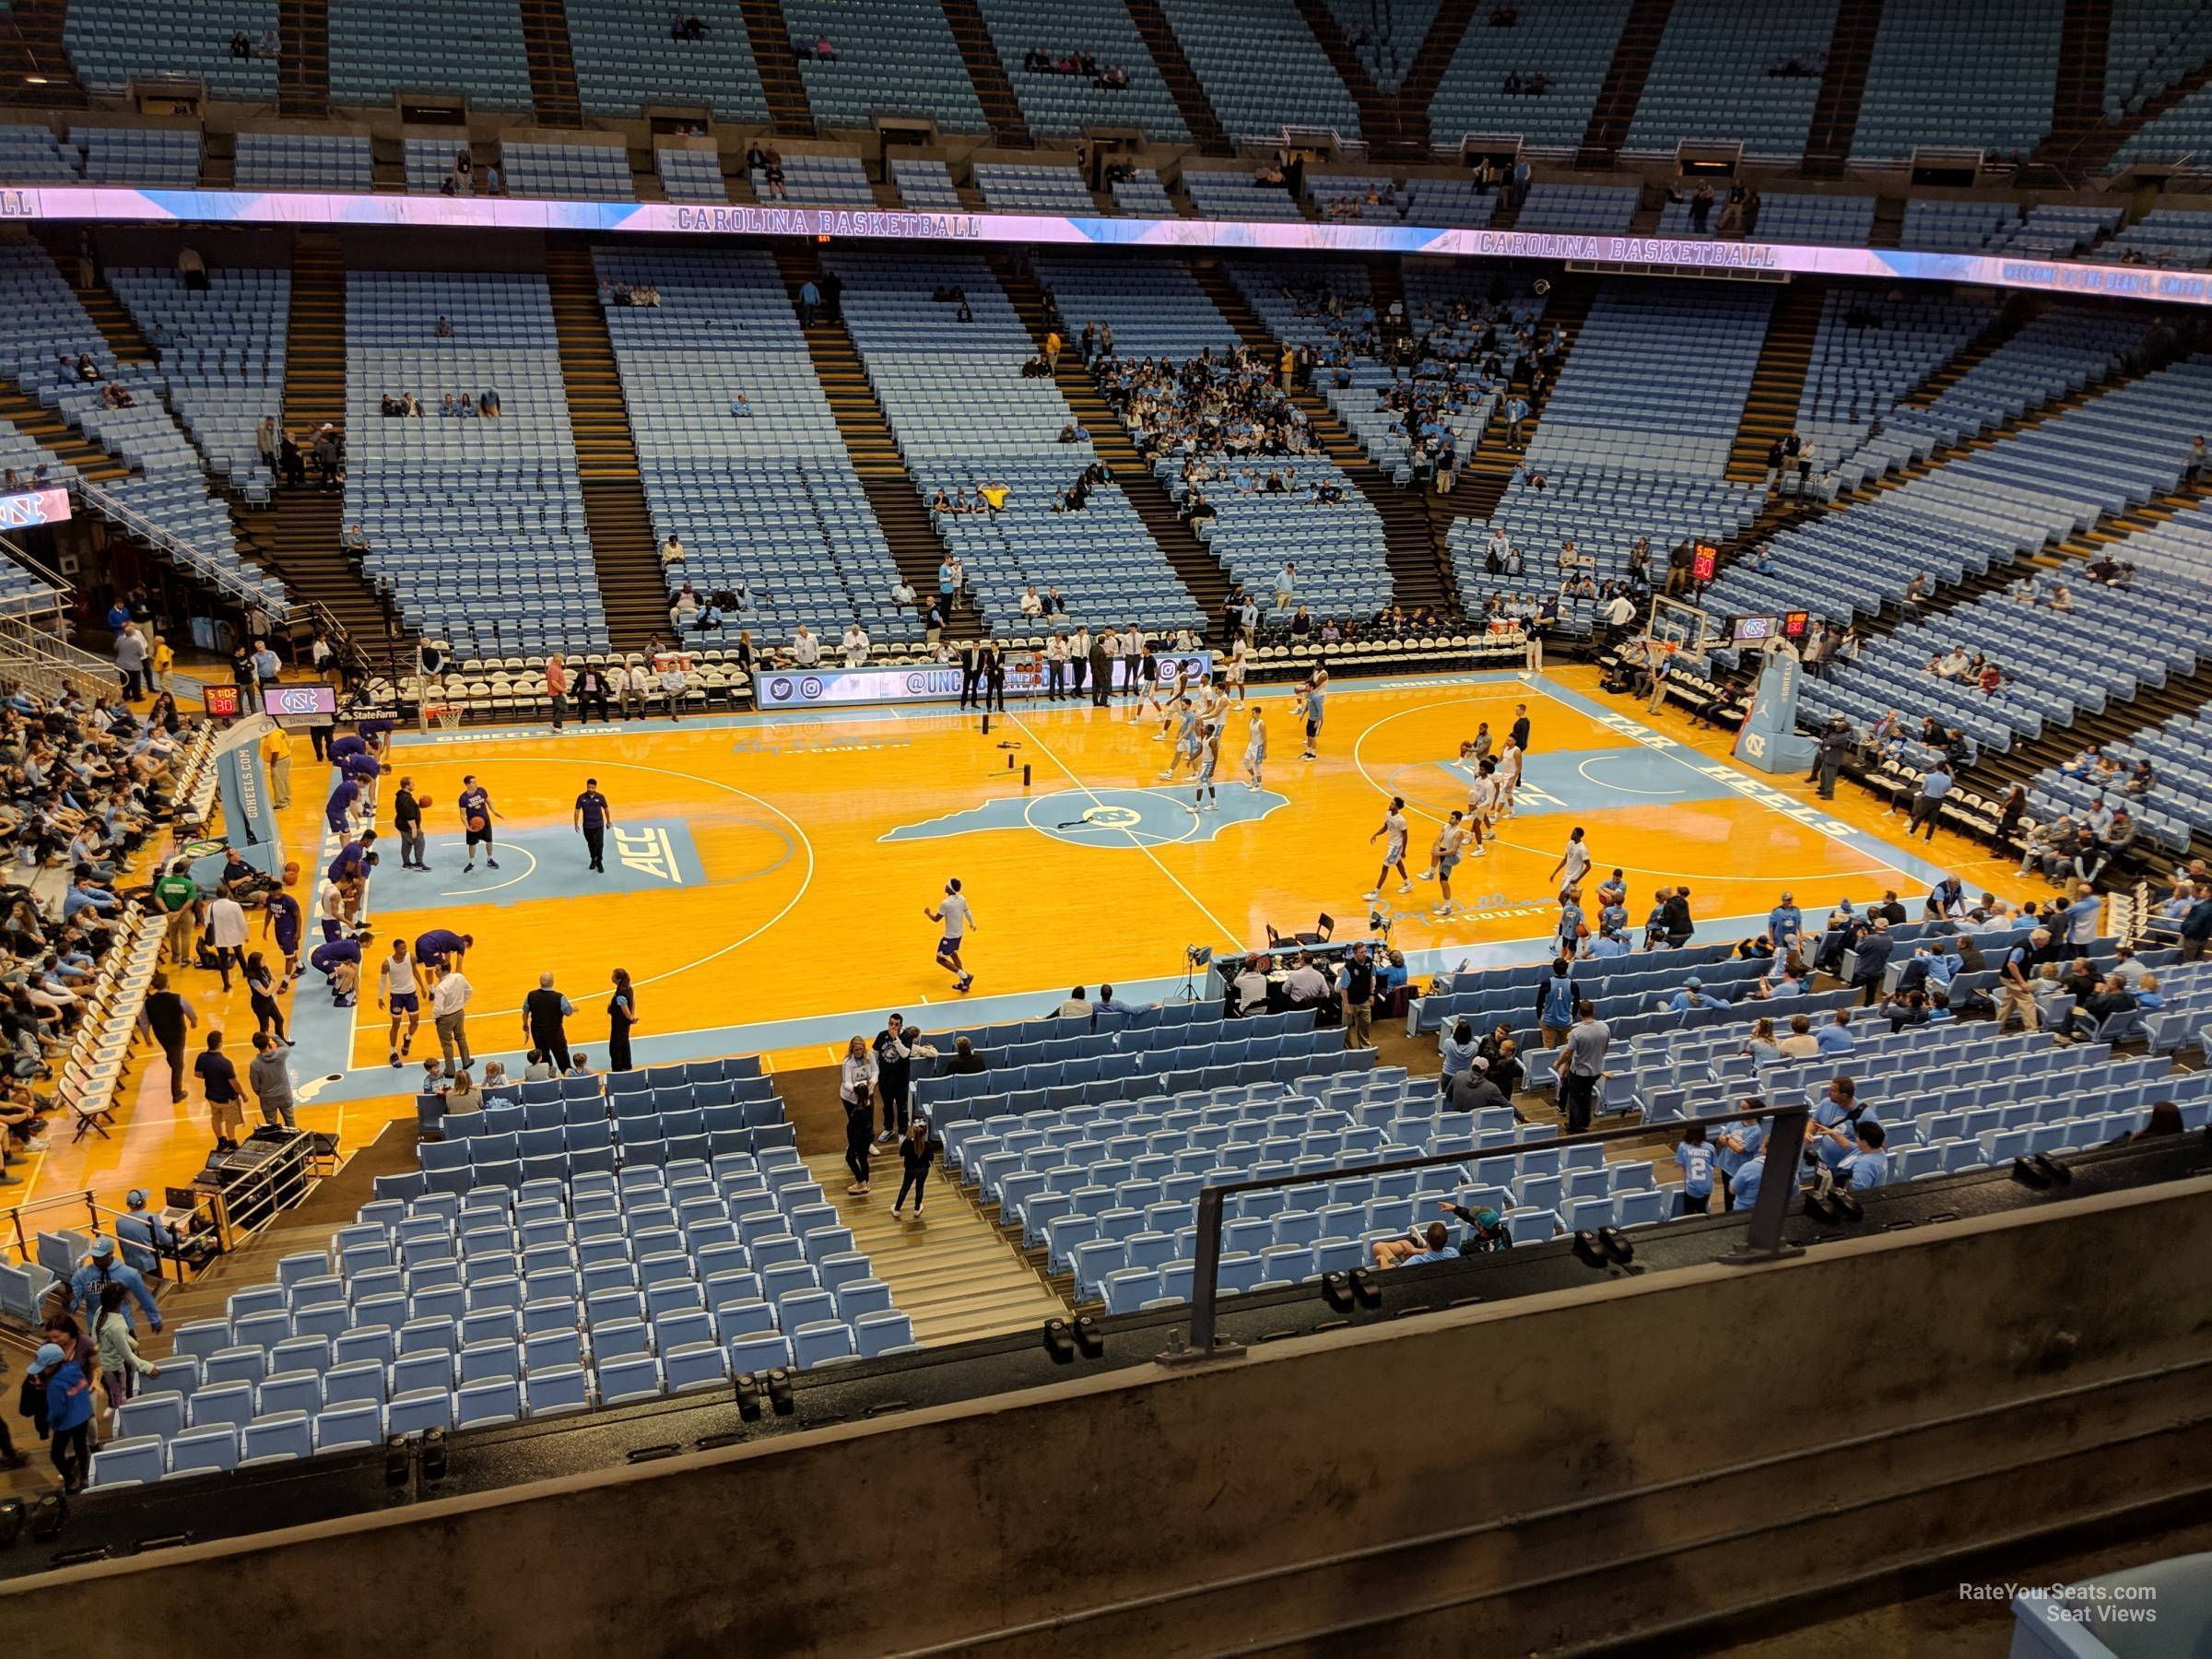 Seat View for Dean Smith Center Section 224, Row C